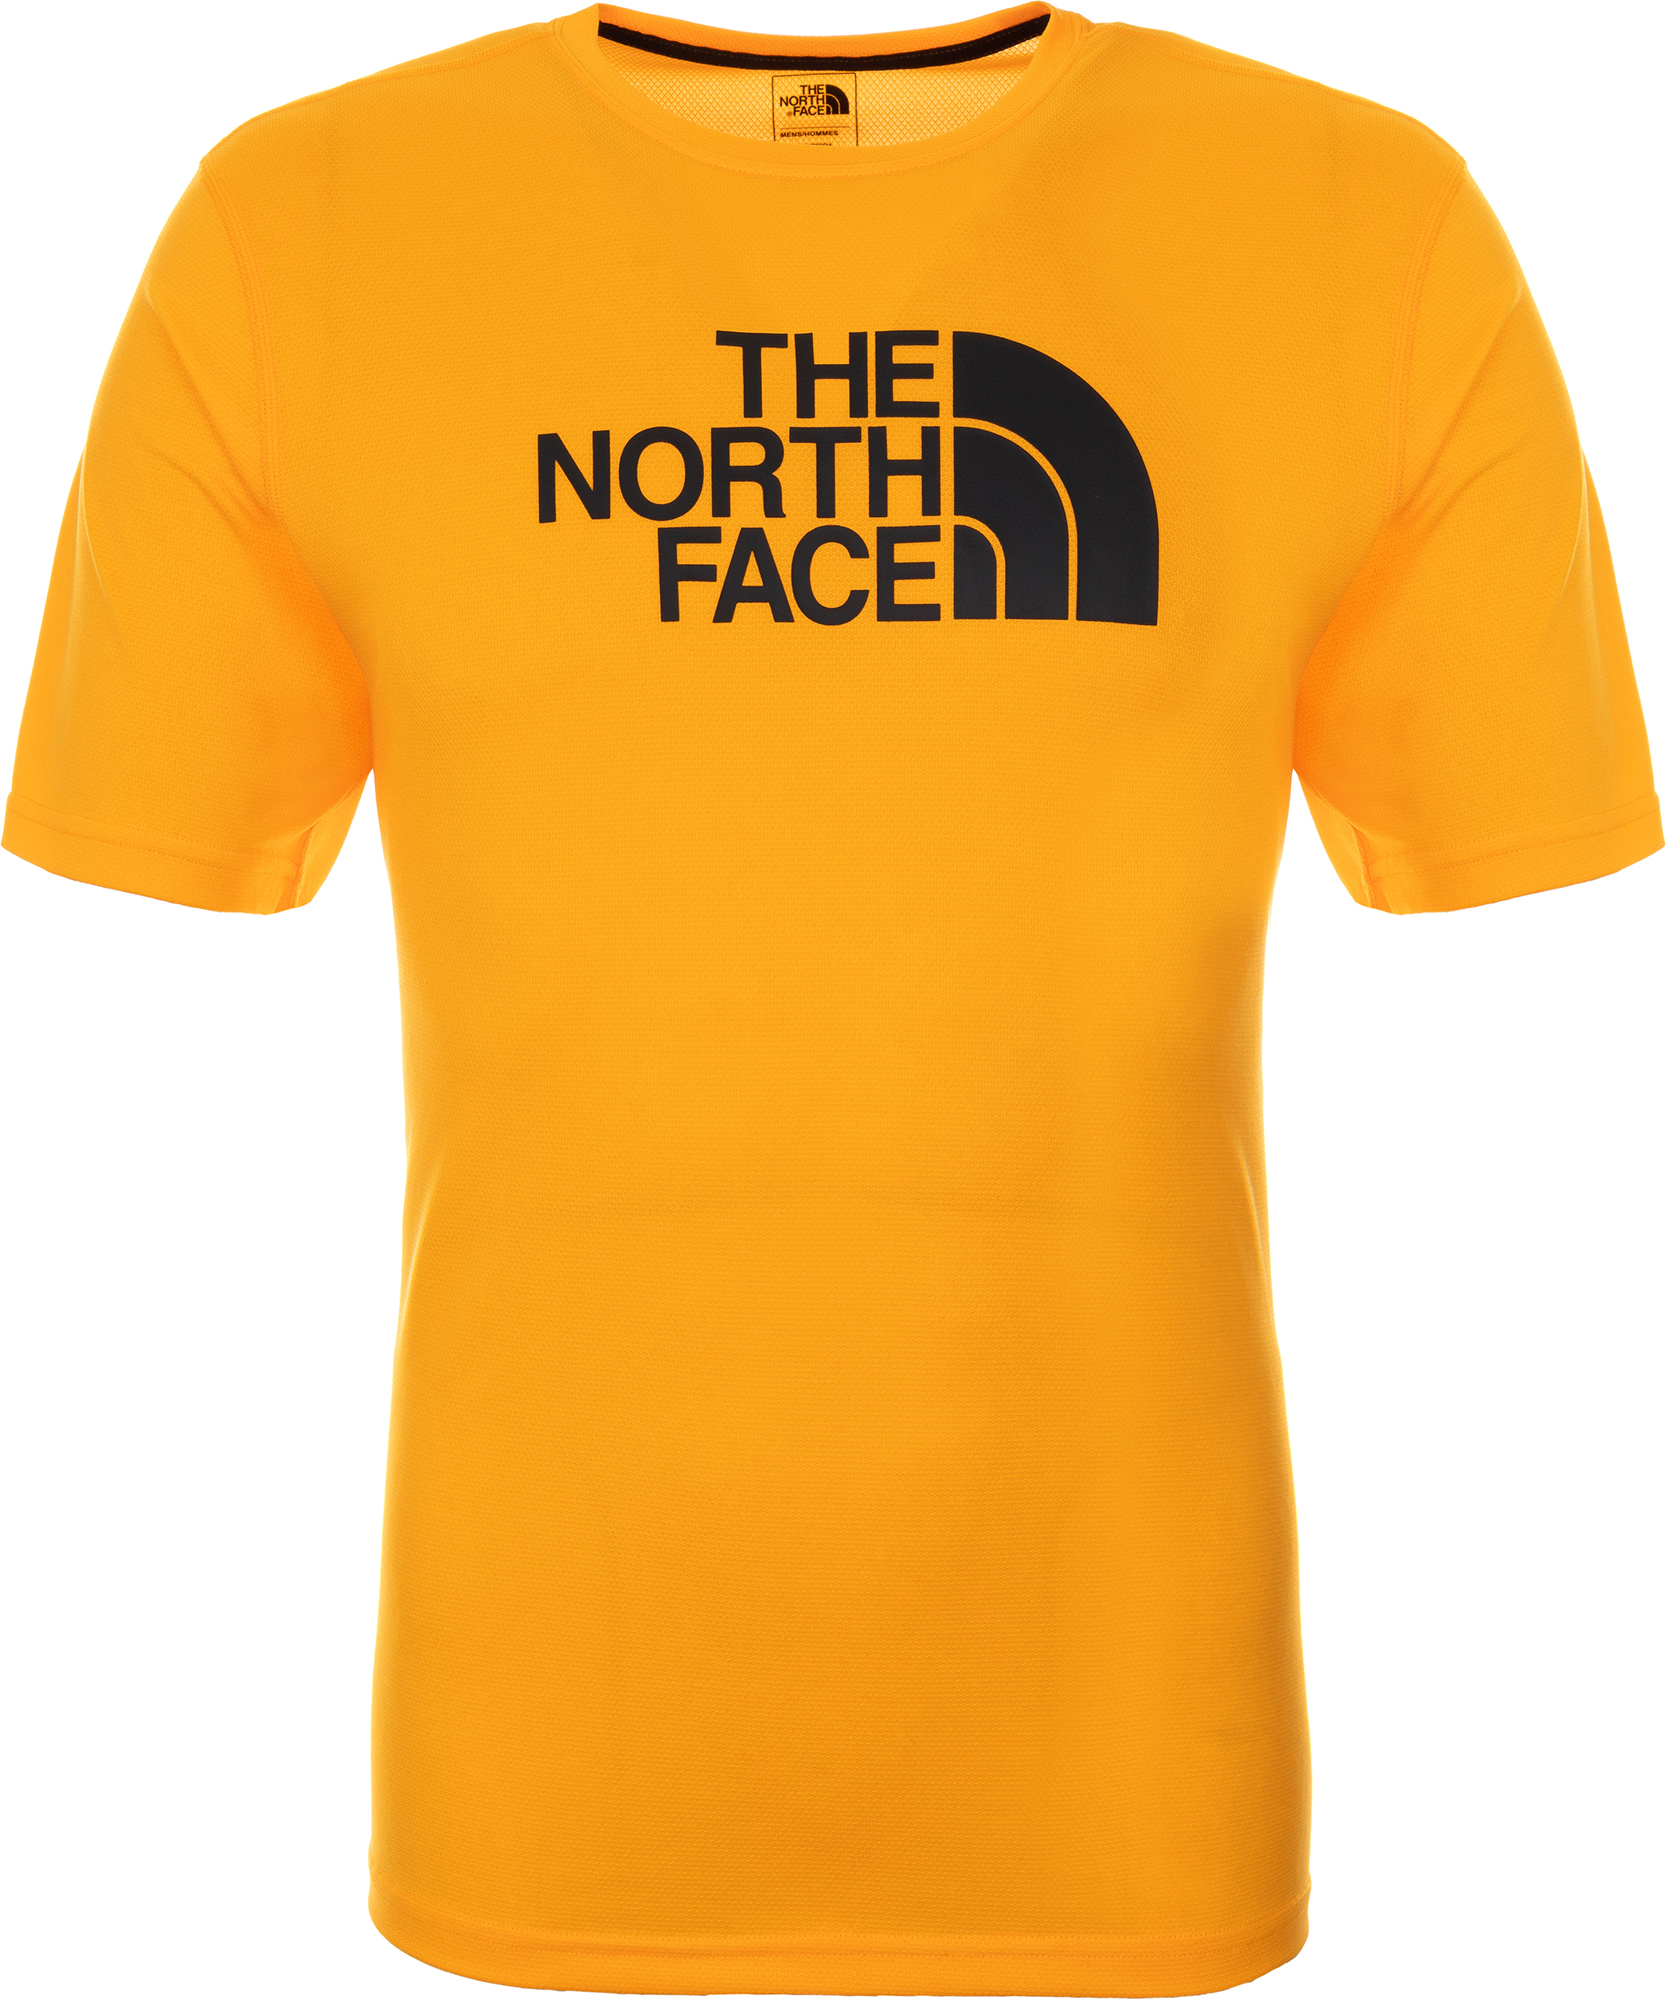 все цены на The North Face Футболка мужская The North Face Train N Logo Flex, размер 52 онлайн